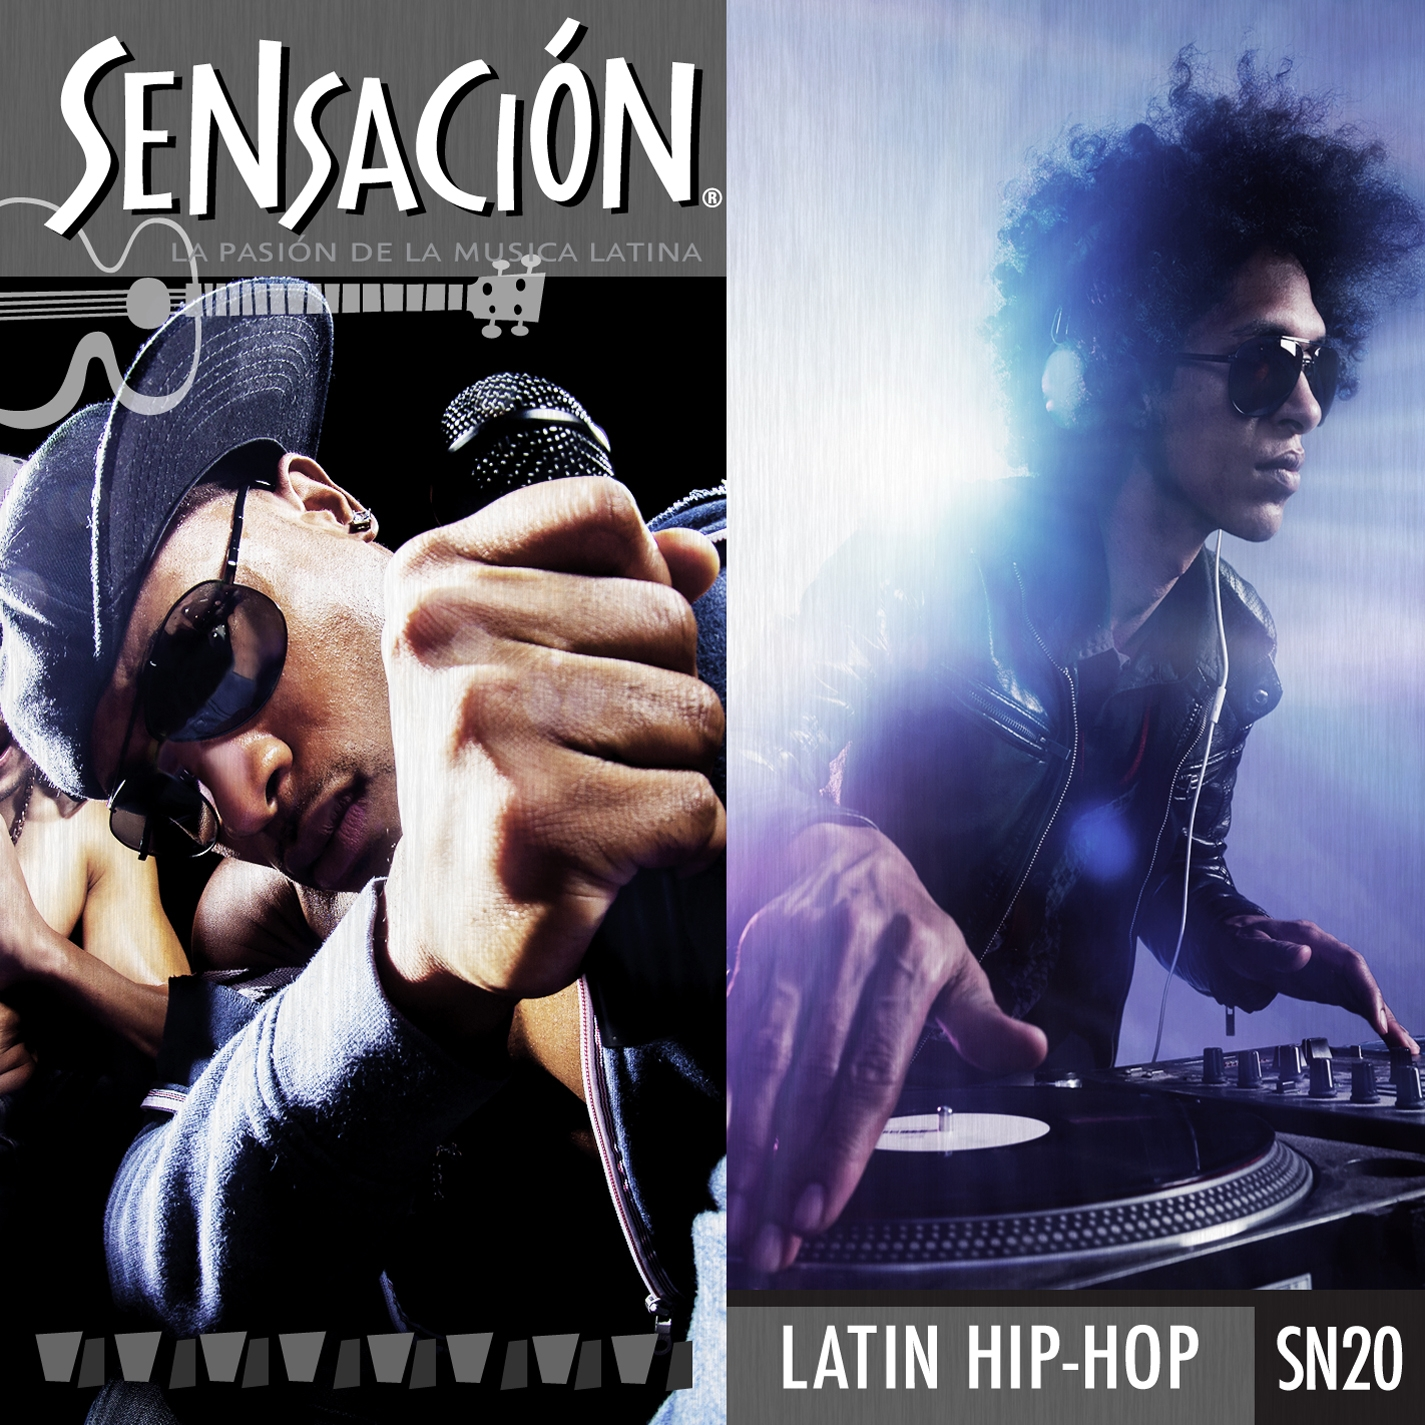 Latin Hip-Hop